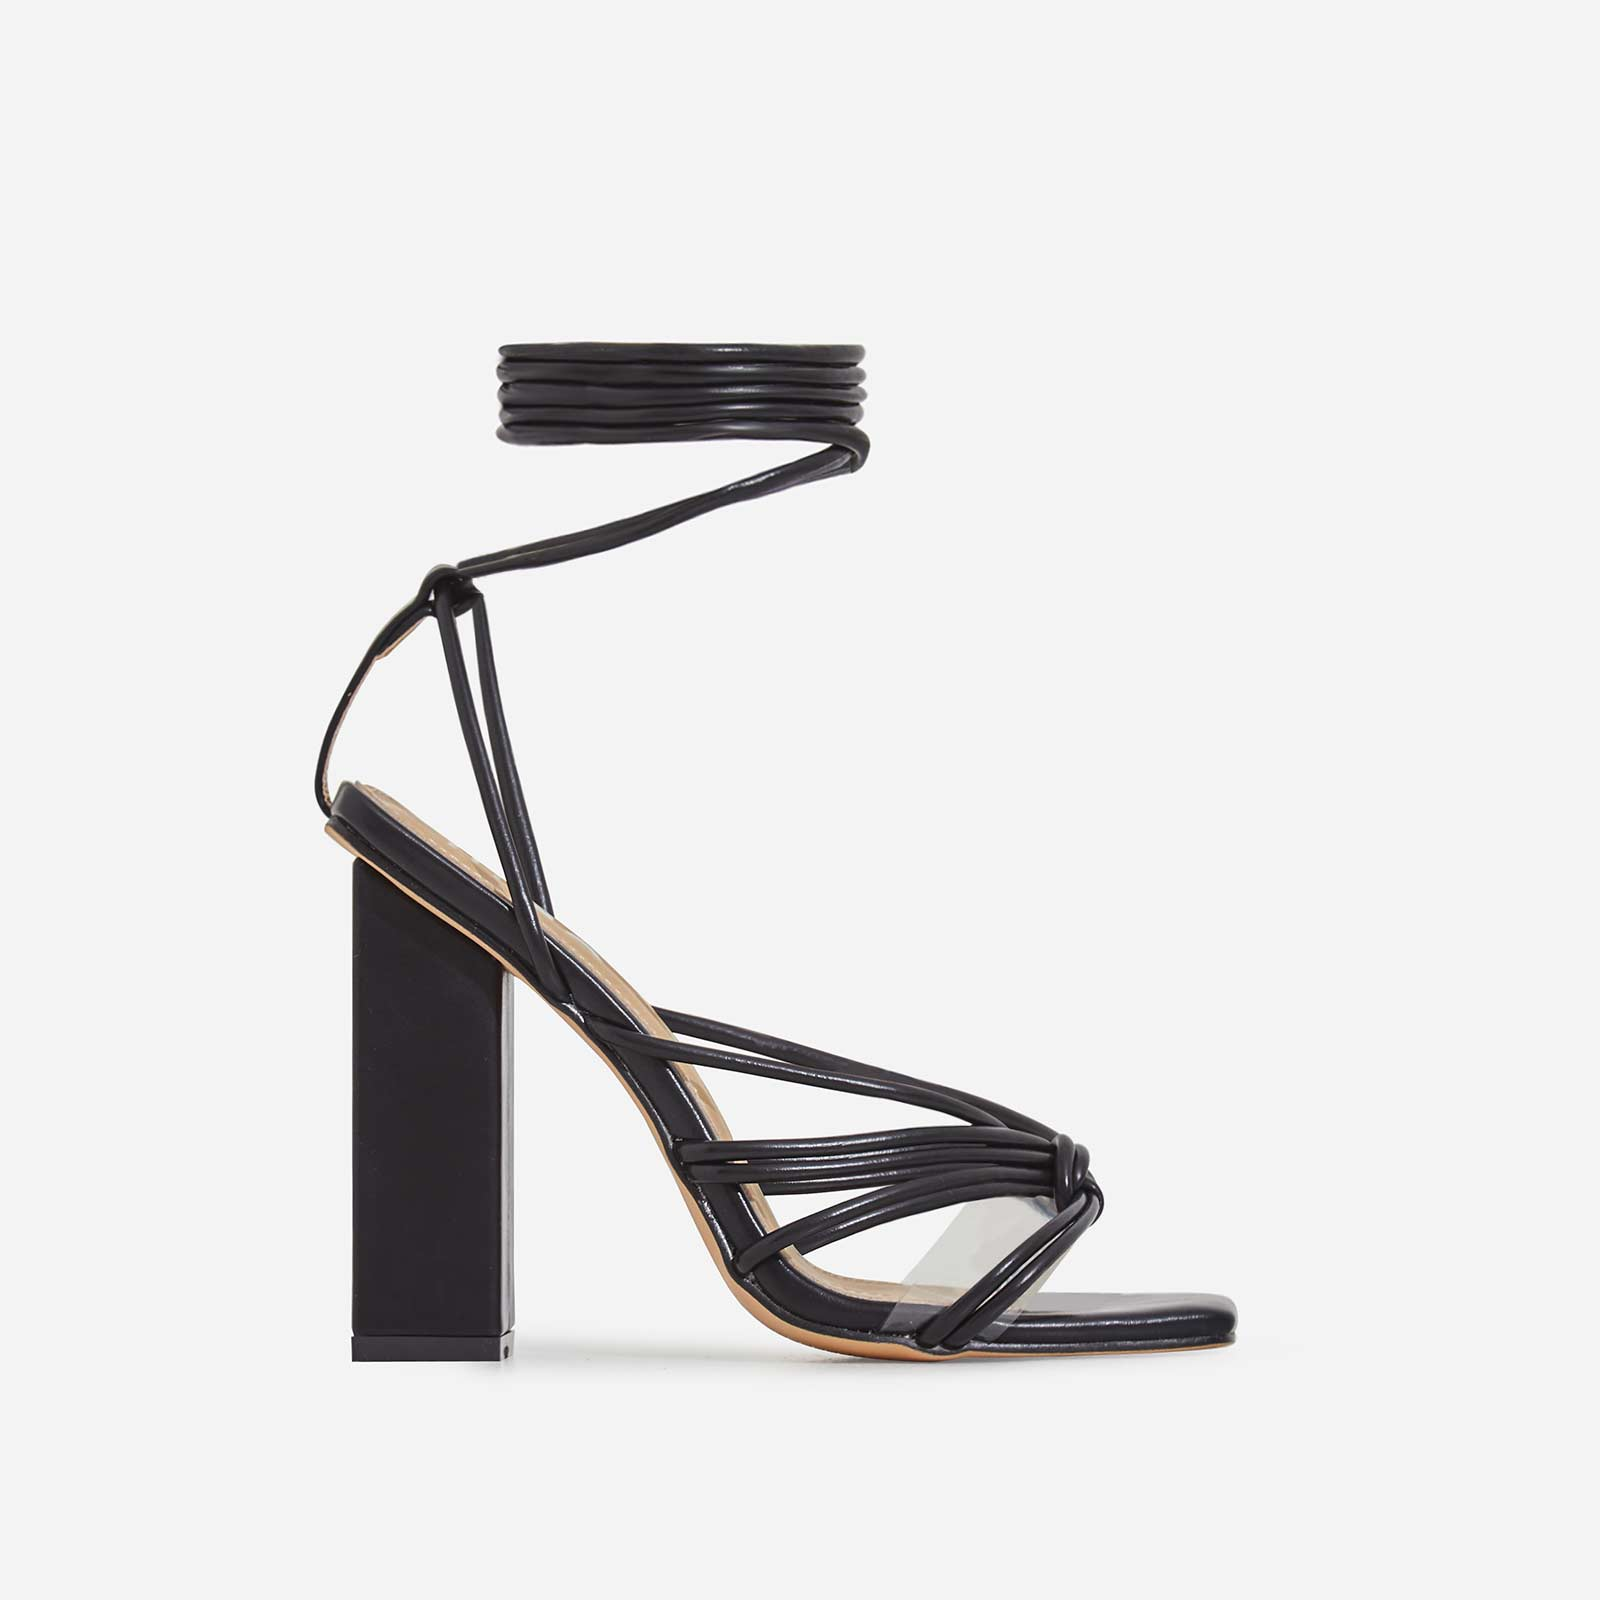 Neima Lace Up Square Toe Perspex Block Heel In Black Faux Leather